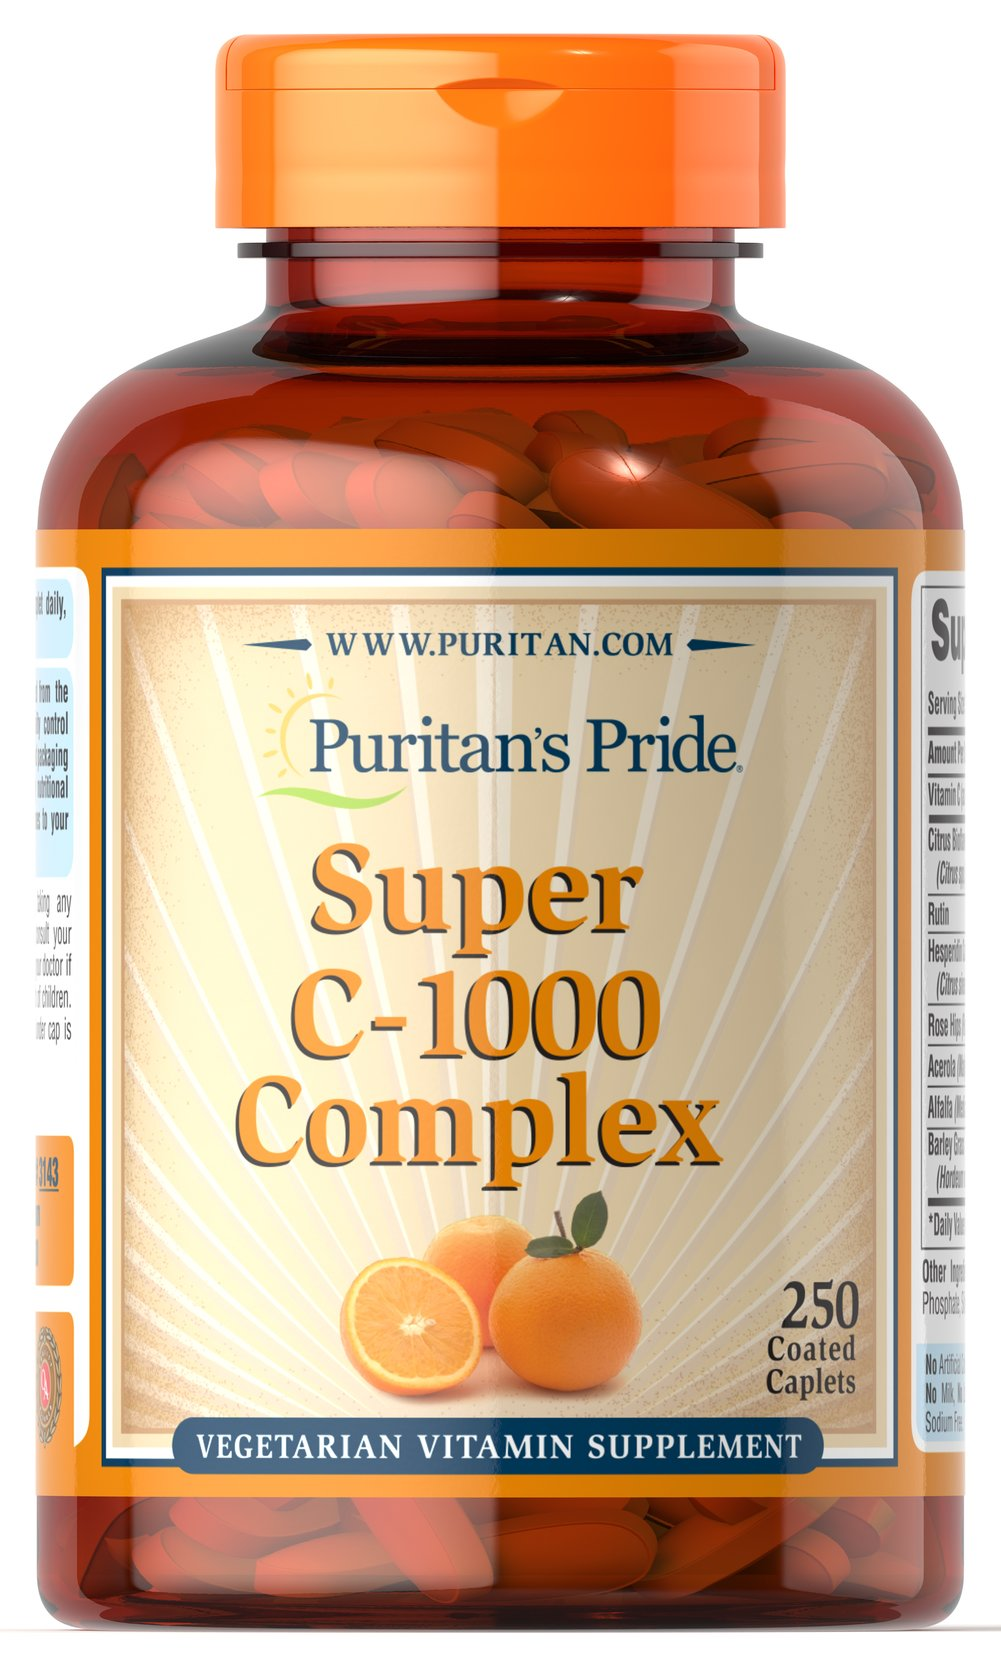 C-1000 Complex™ <p>Vitamin C  is essential to many functions in the body and is one of the leading vitamins for immune support.** Our C-complex includes potent Vitamin C as Ascorbic Acid. We also include Citrus Bioflavonoids, Rose Hips, Rutin, and Acerola.**</p><p>Offers superior antioxidant support.**</p><p>Supports healthy immune function and promotes well-being.**</p> 250 Tablets 1000 mg $34.99